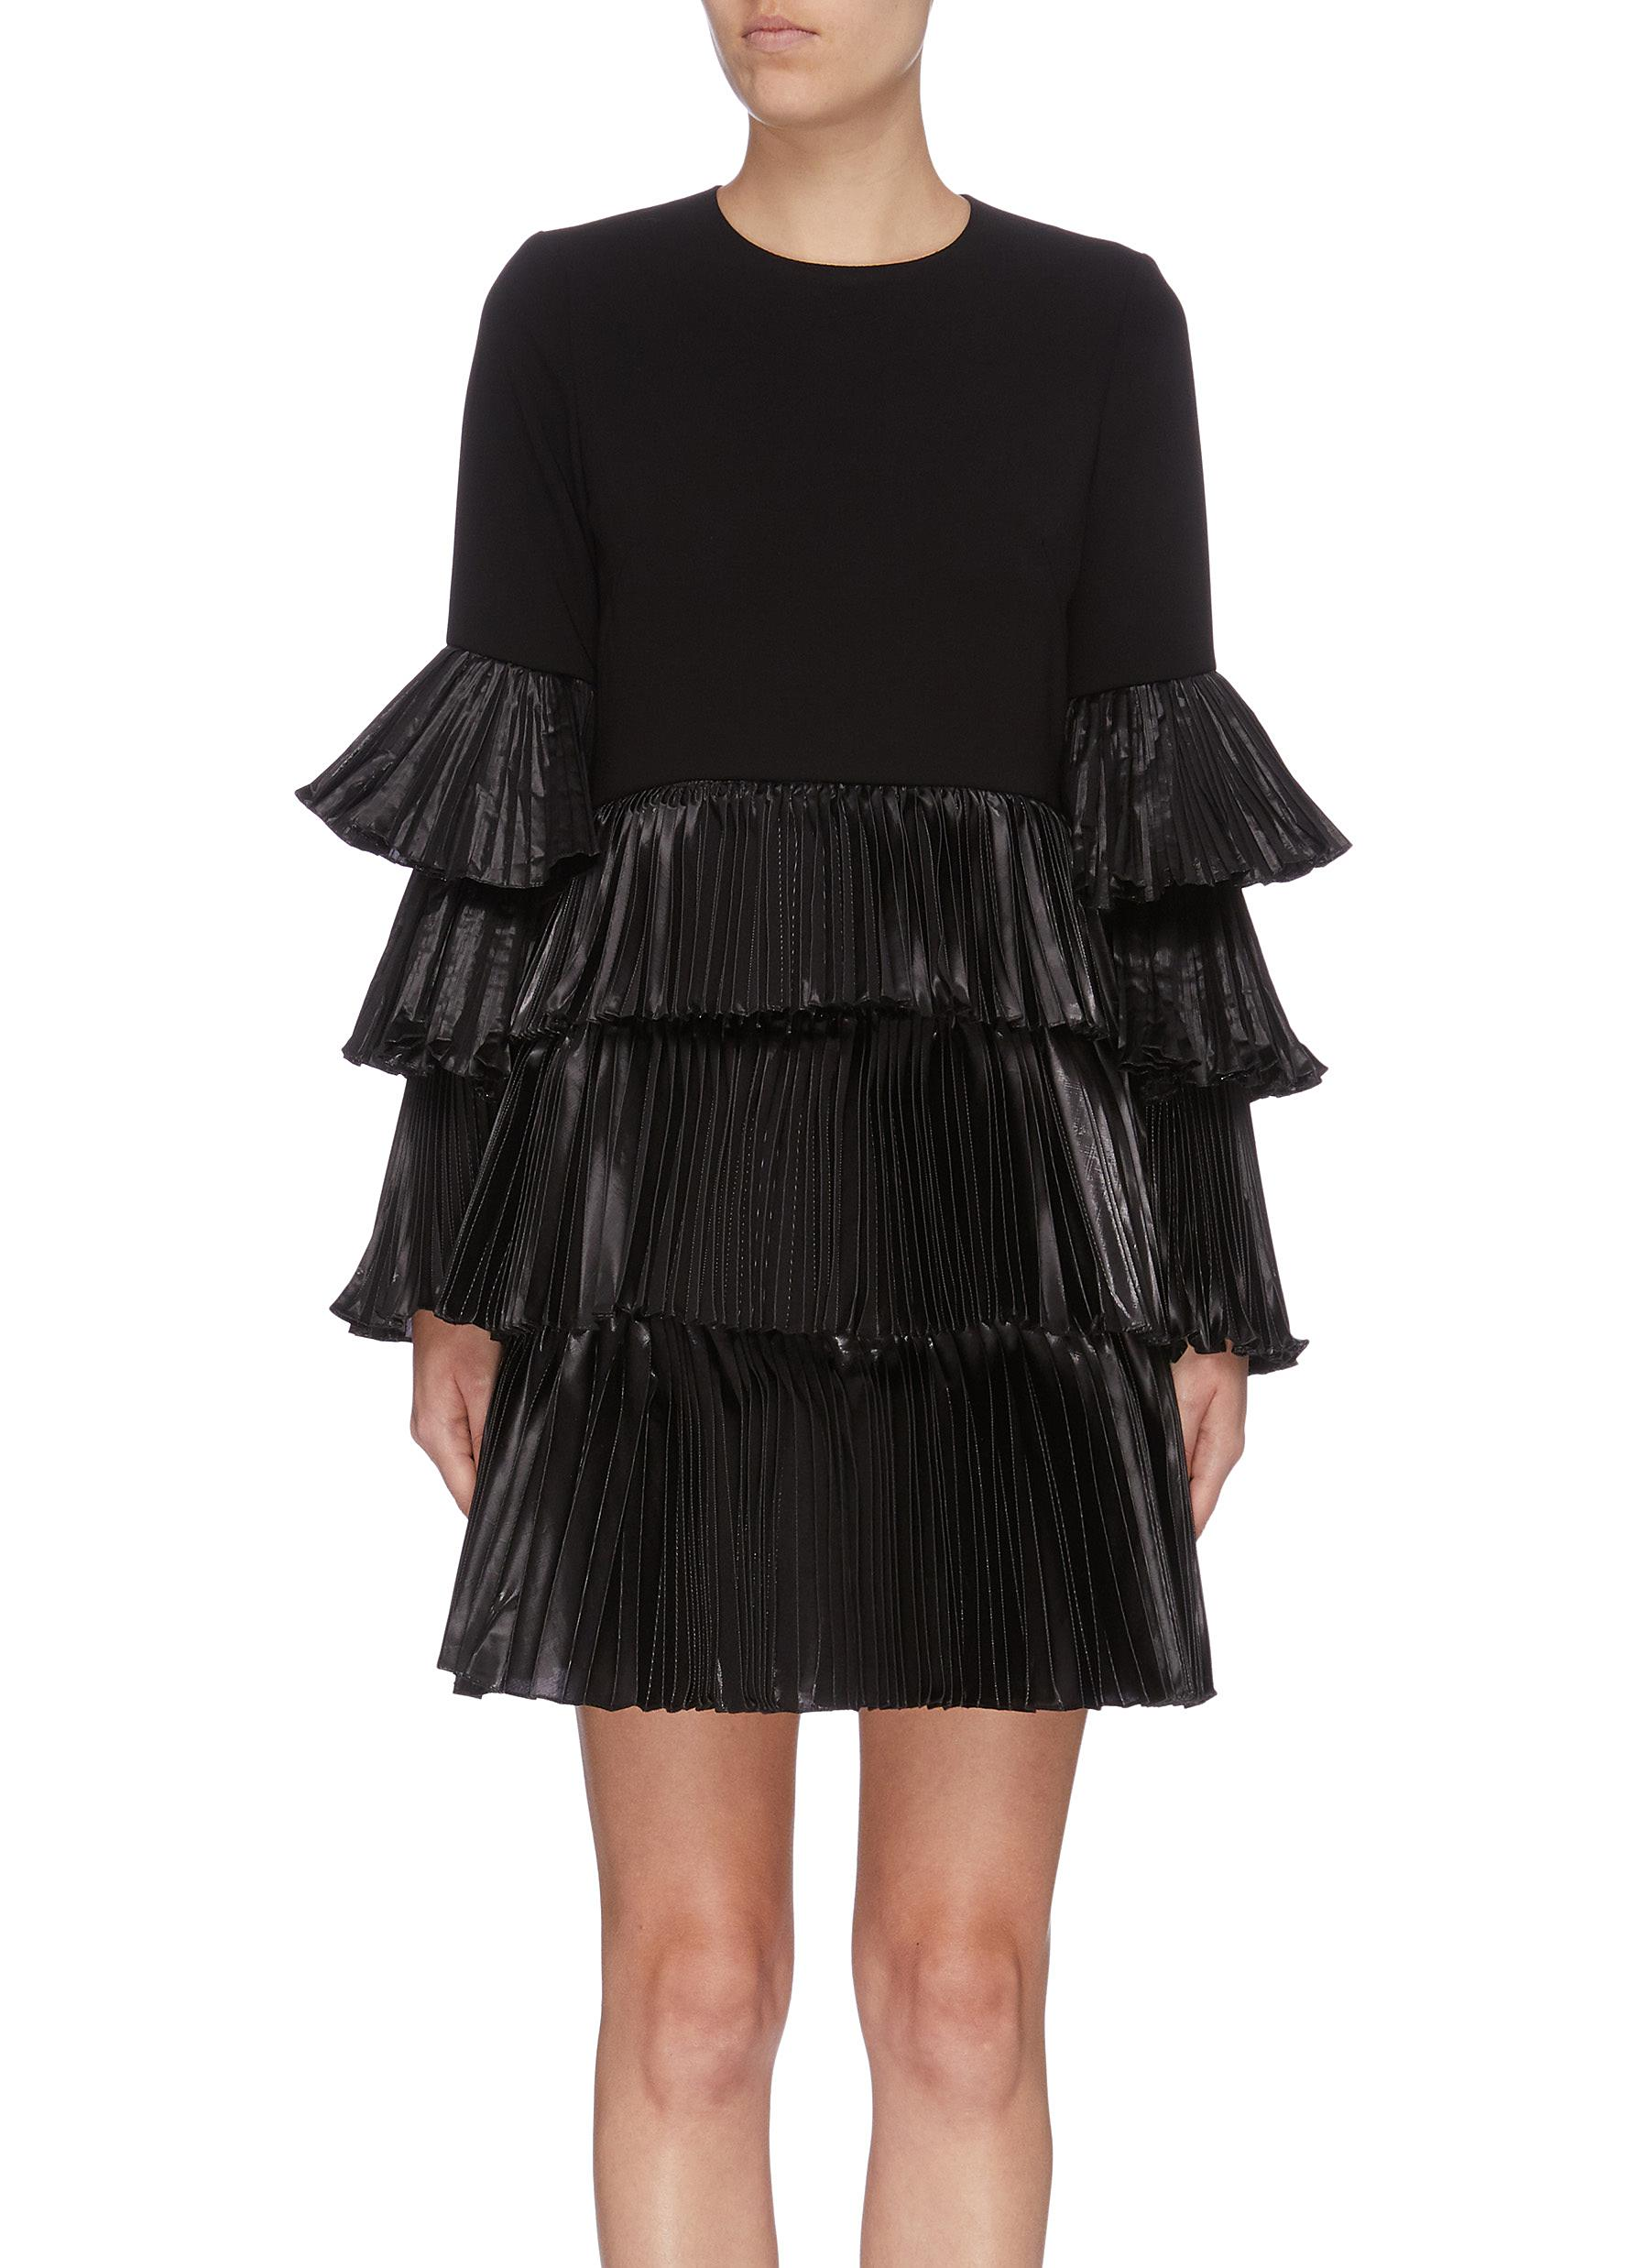 Quinta pleated tiered dress by Leal Daccarett